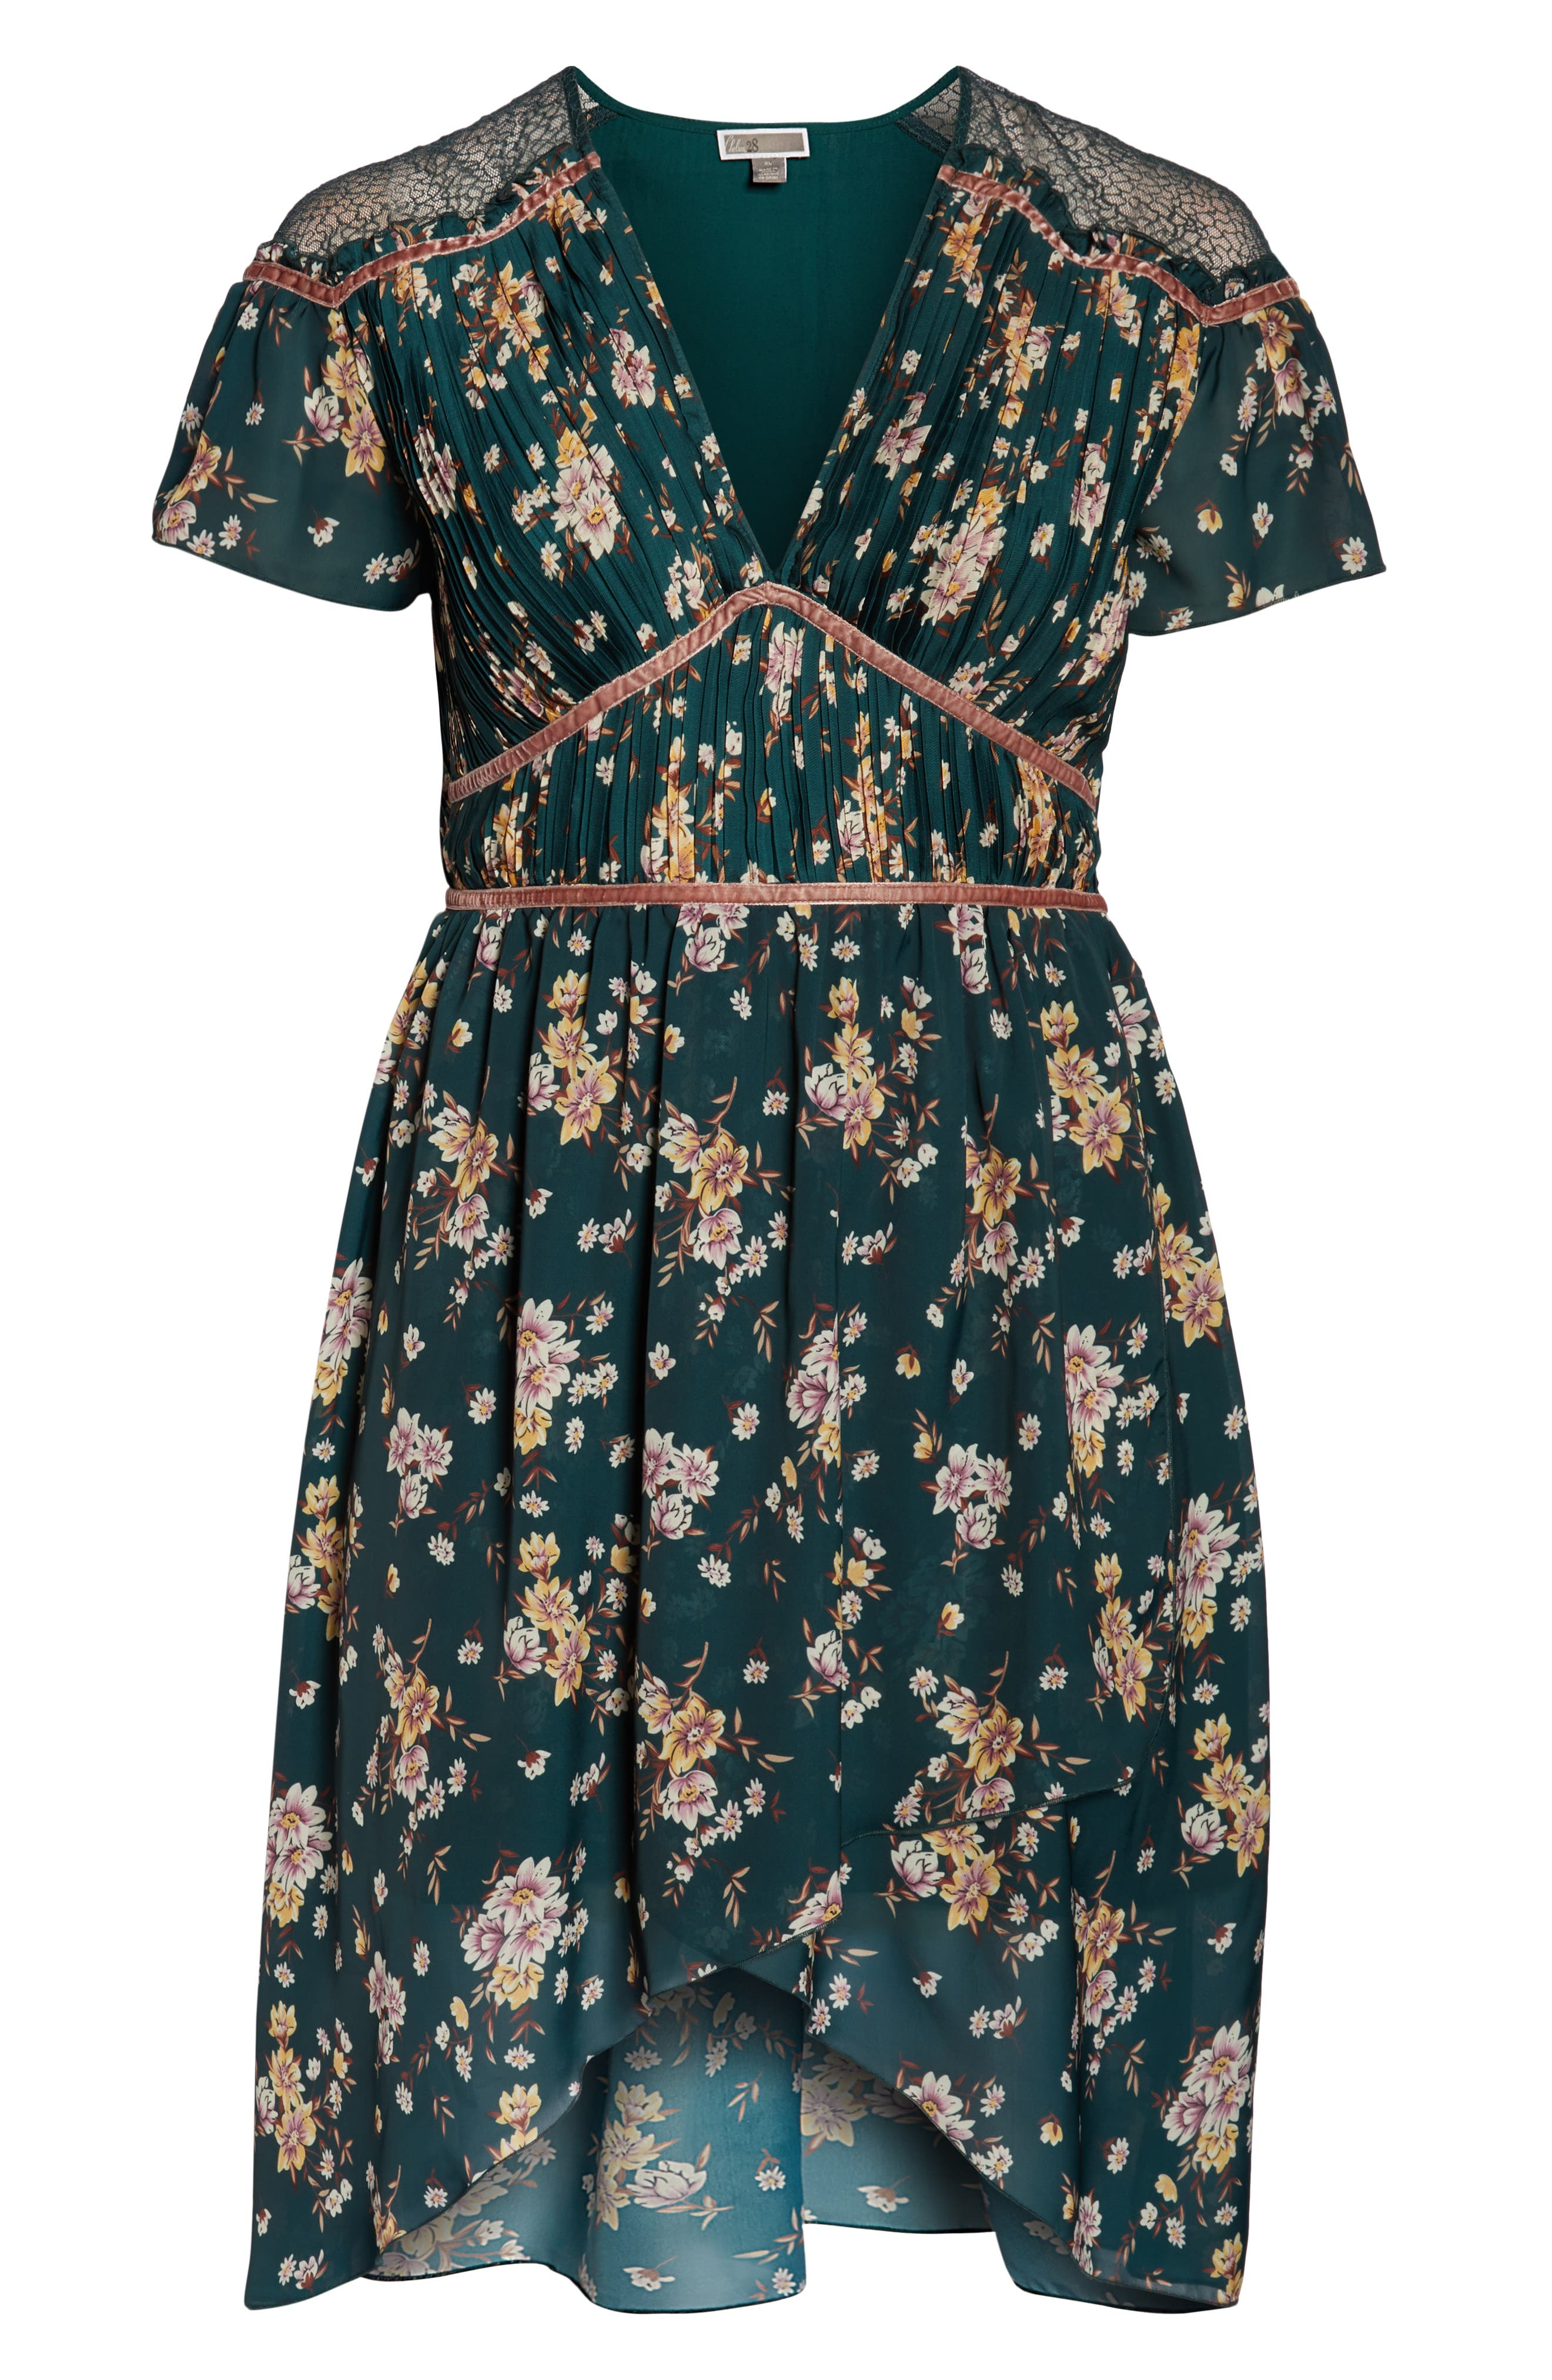 Floral Pleat & Lace Mix Dress,                             Alternate thumbnail 13, color,                             GREEN BRANCHING LILIES